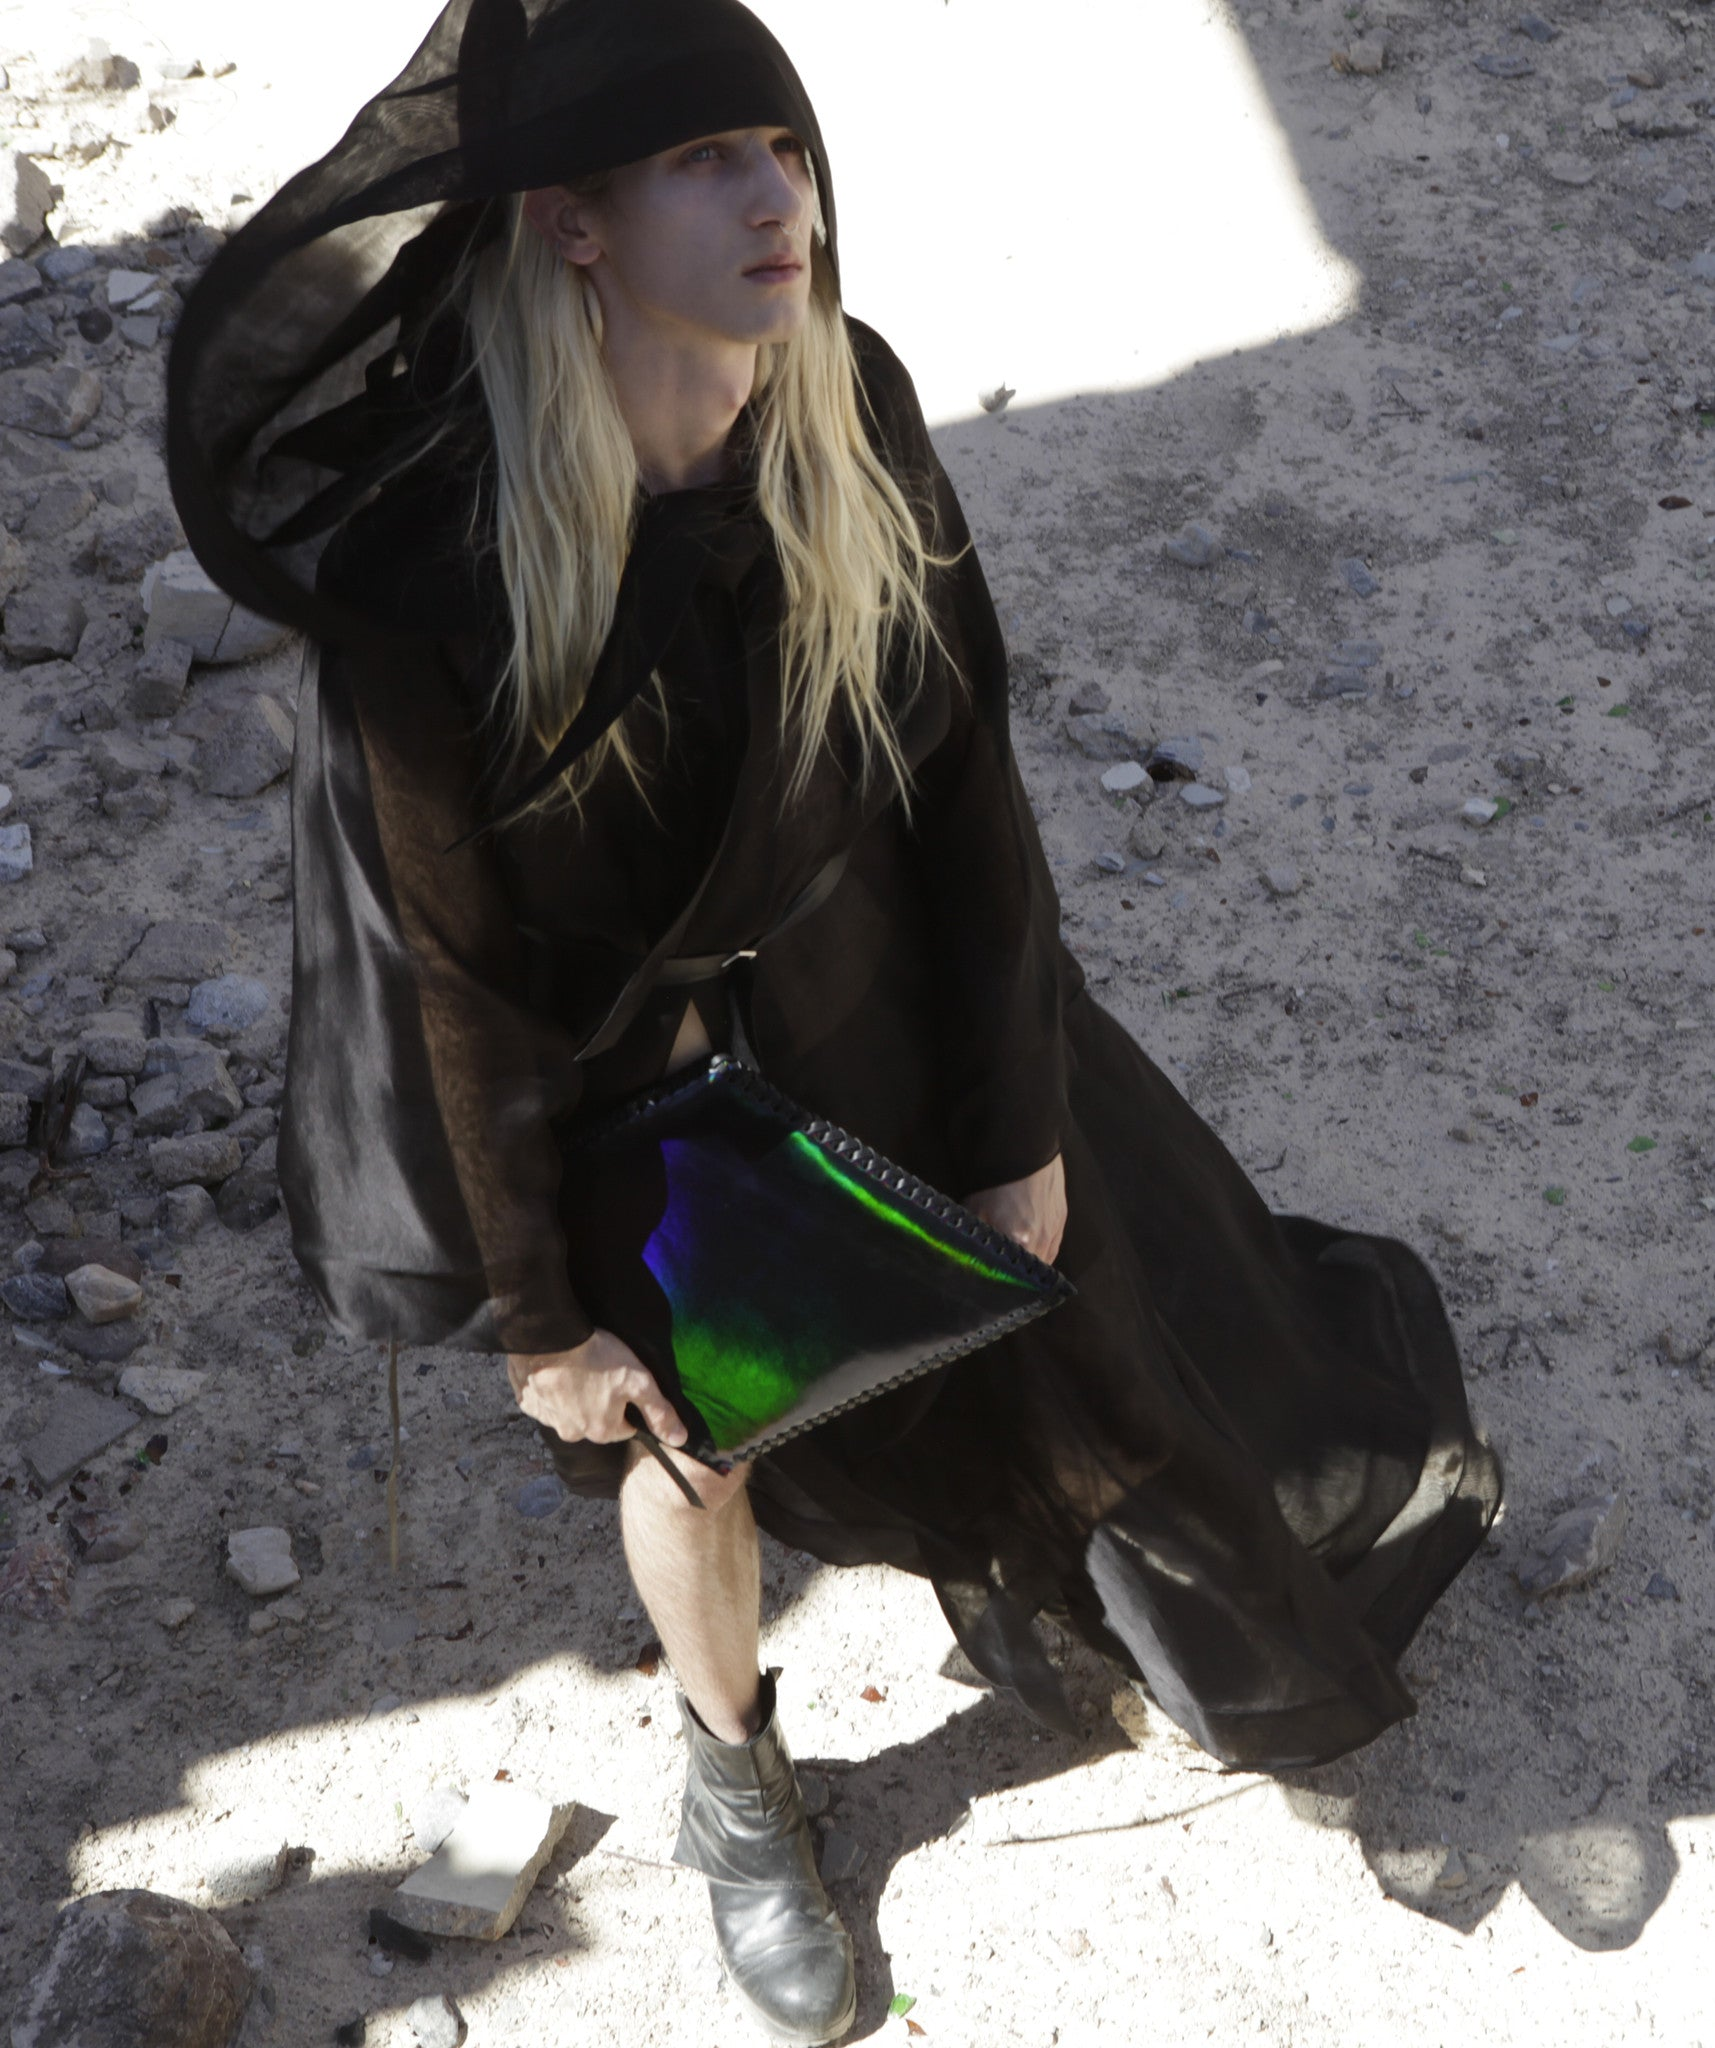 Ryan James Smith model Wendy Nichol New York Clothing Designer Handmade in NYC New York City SS17 Fashion Runway Show Signals to the Mothership Made to Order Custom Tailoring Made to Measure Death Valley Black Sheer Hood Hooded Cape Cloak Coat Belle Sleeves Long Train Oversized Hood Gothic Goth Pagan Witch High Priestess Sorceress Magician Wizard